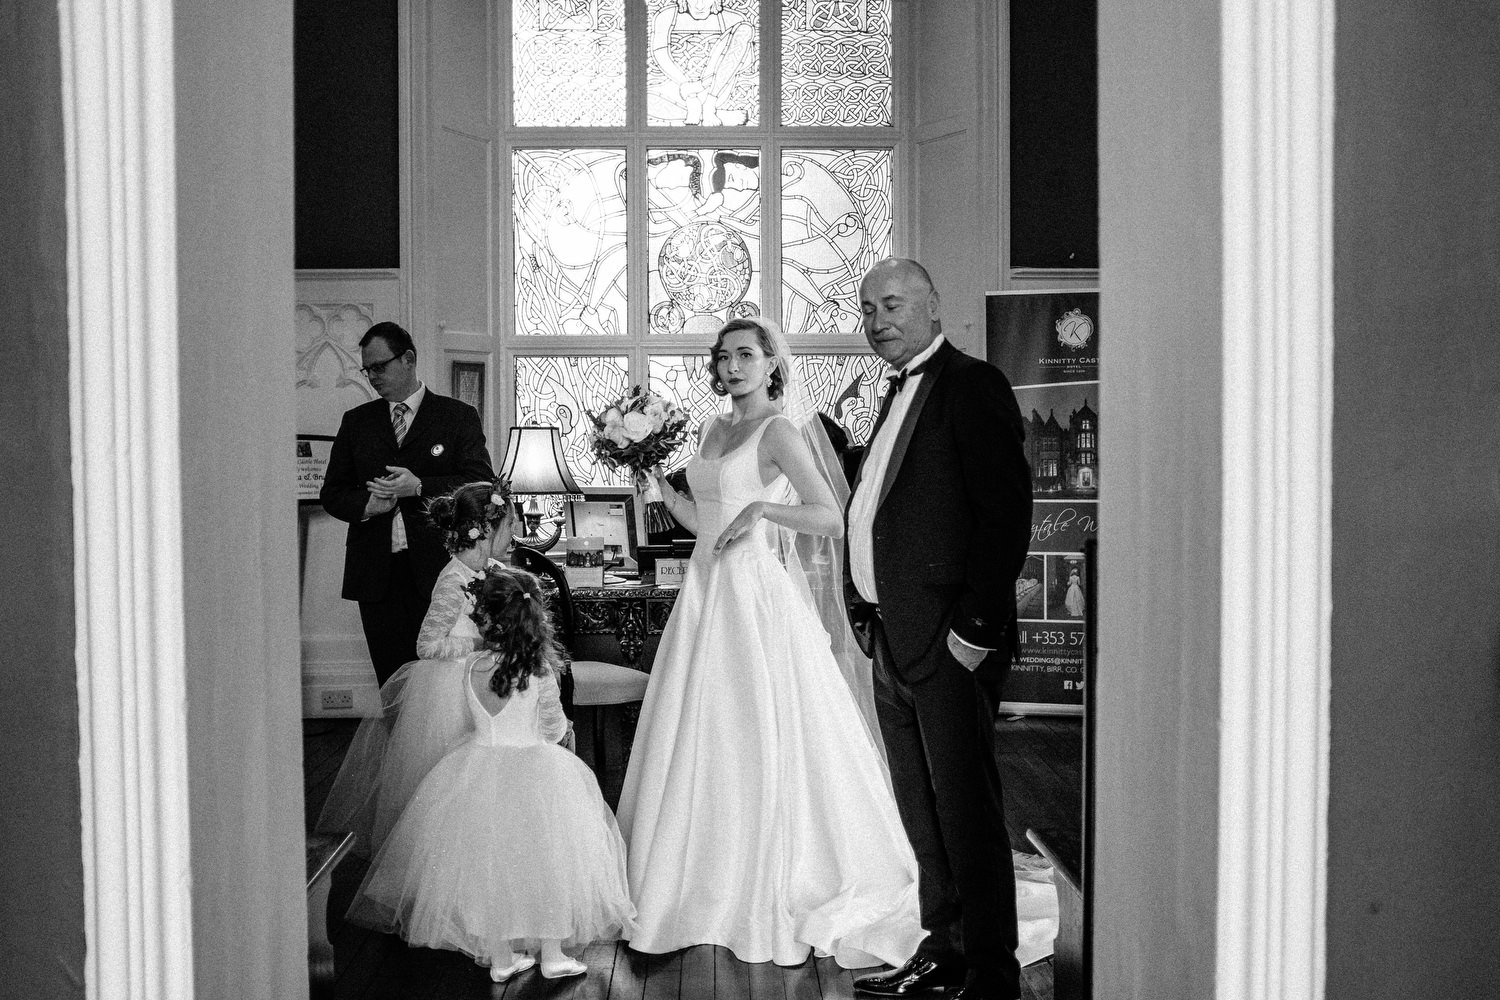 000000000000000000000101_bride_style_vintage_photography_david_mcclelland_ireland_castle_hollywood_kinnity_wedding_photographer_fujifilm